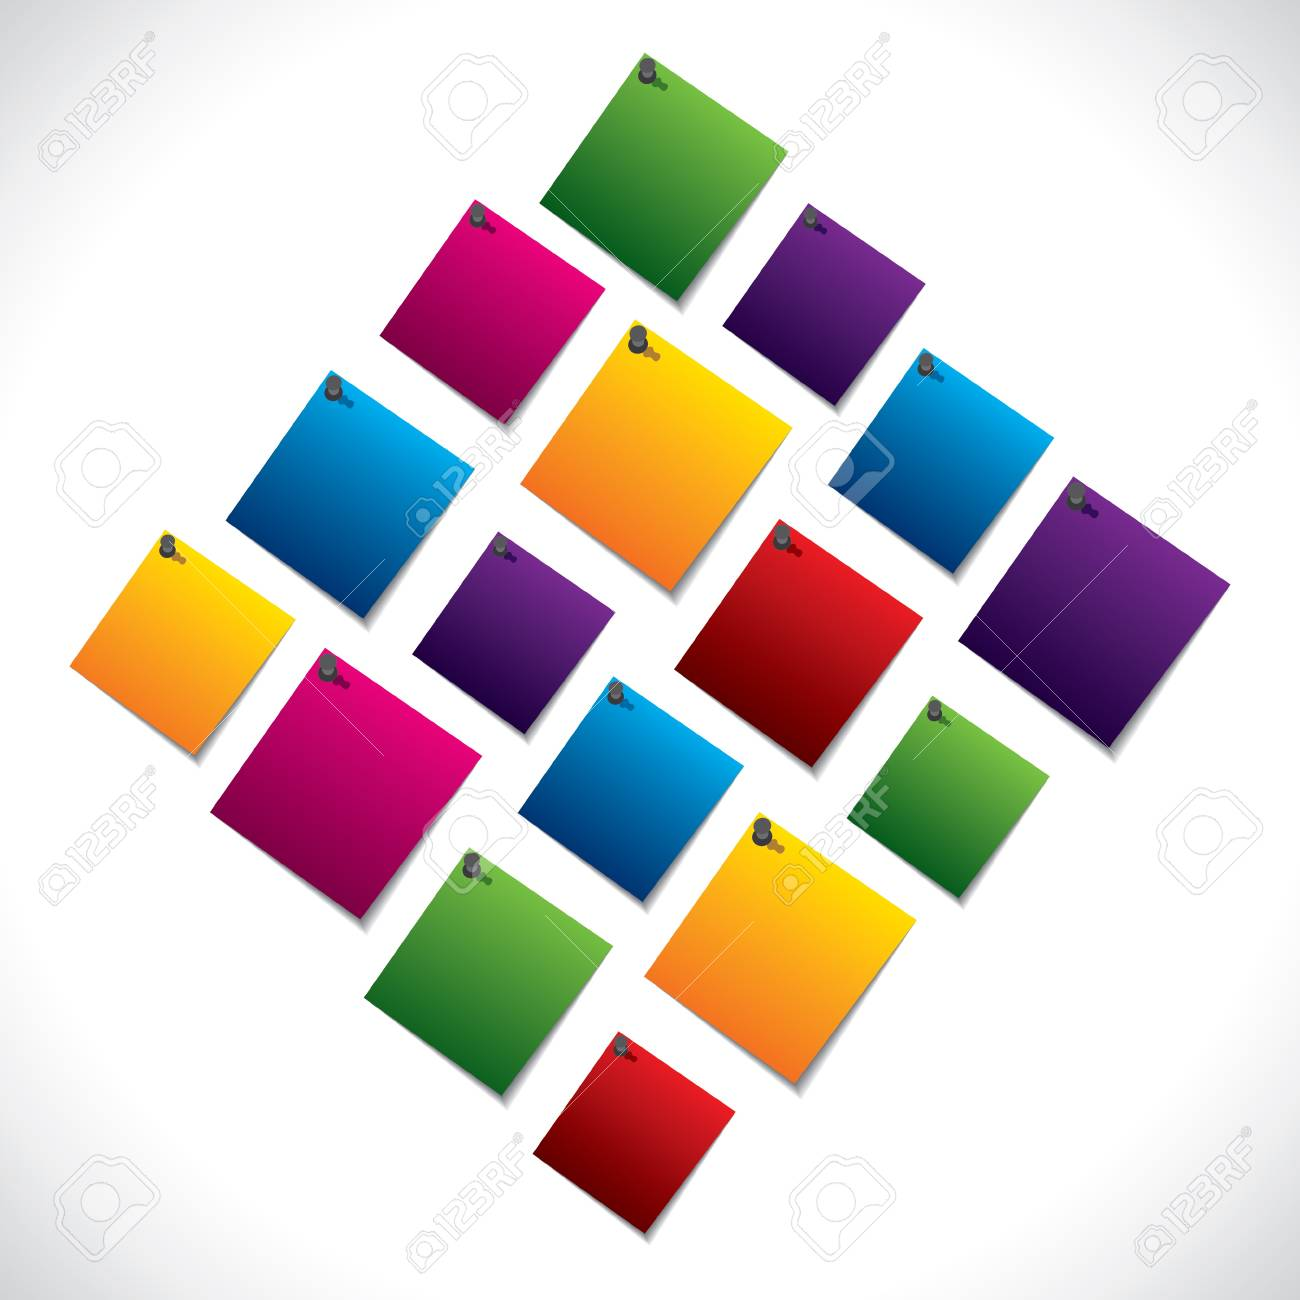 colorful paper note stock vector Stock Vector - 17763374